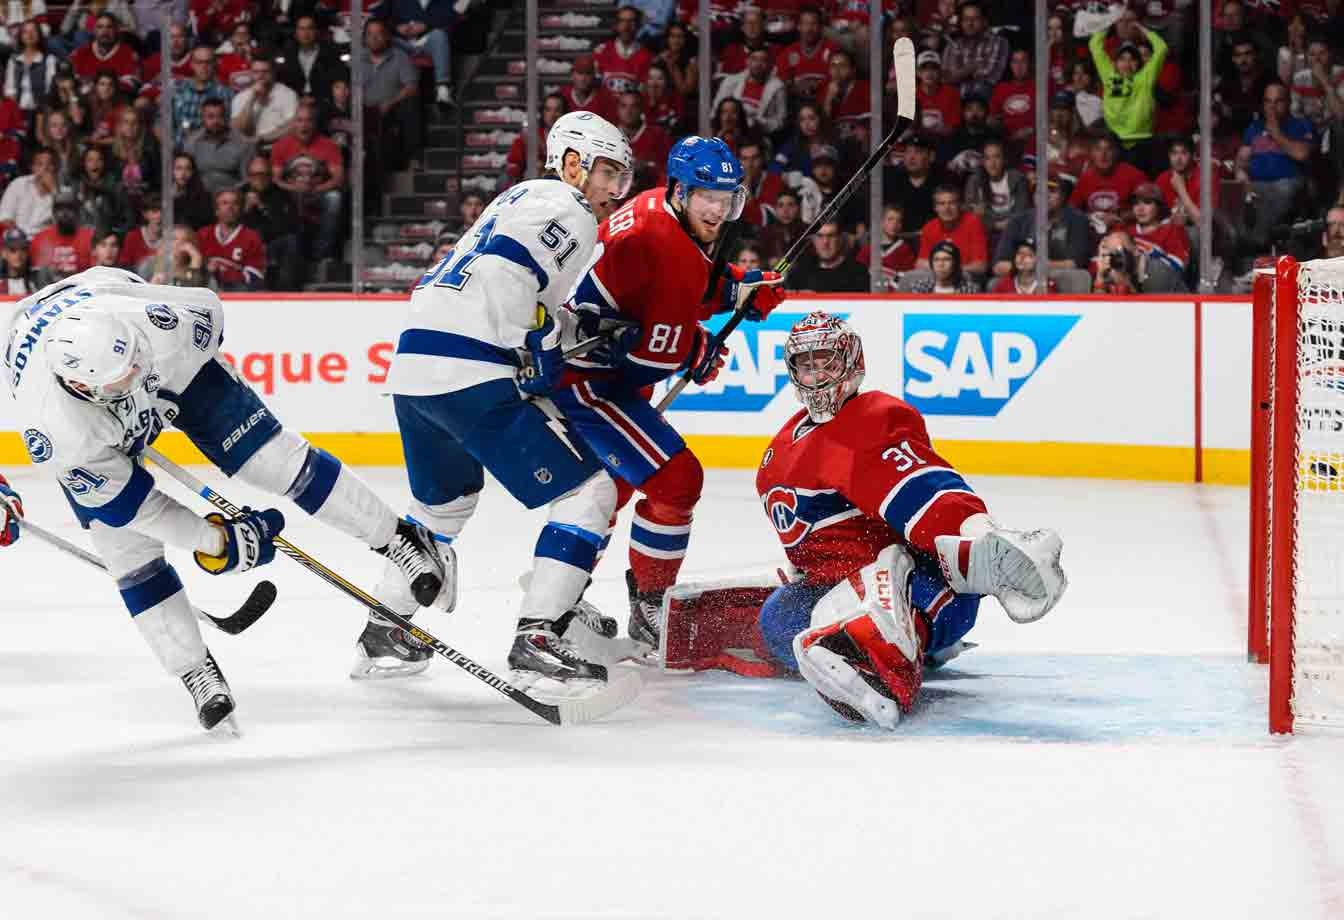 Held to just three assists through the first eight games of the postseason, Steven Stamkos breaks through against Carey Price and the Canadiens in Game 2 of the Eastern semifinals. He adds two helpers in the 6-2 win and goes on to post six goals and 11 points in the Lightning's next 11 games.